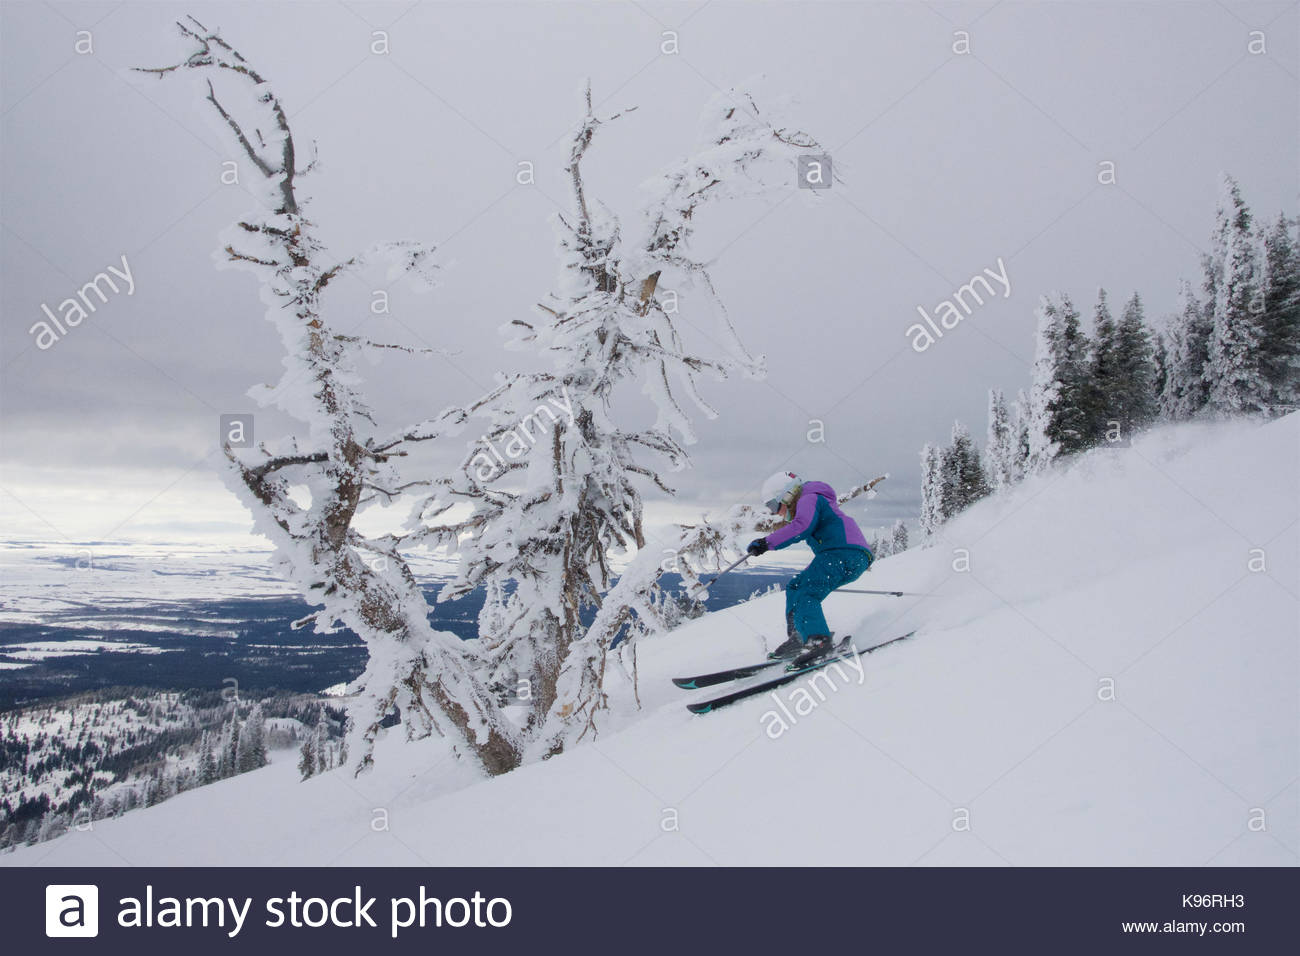 A teen girl downhill skiing near rime covered trees on a cloudy day. - Stock Image